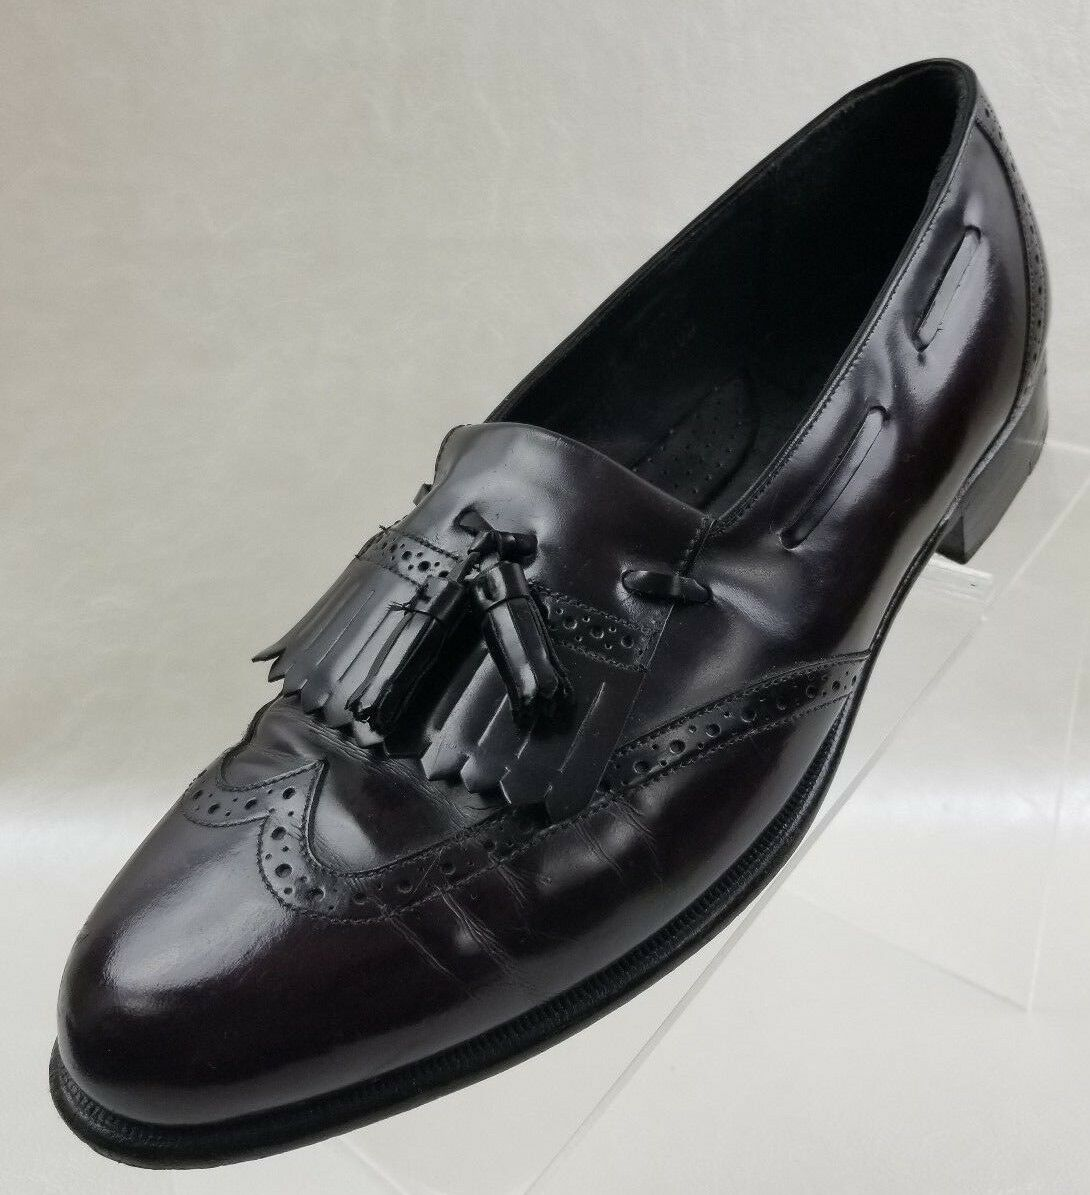 Johnston Murphy Loafers Mens Wing Tip Tassel Kiltie Burgundy Leather shoes 8.5M